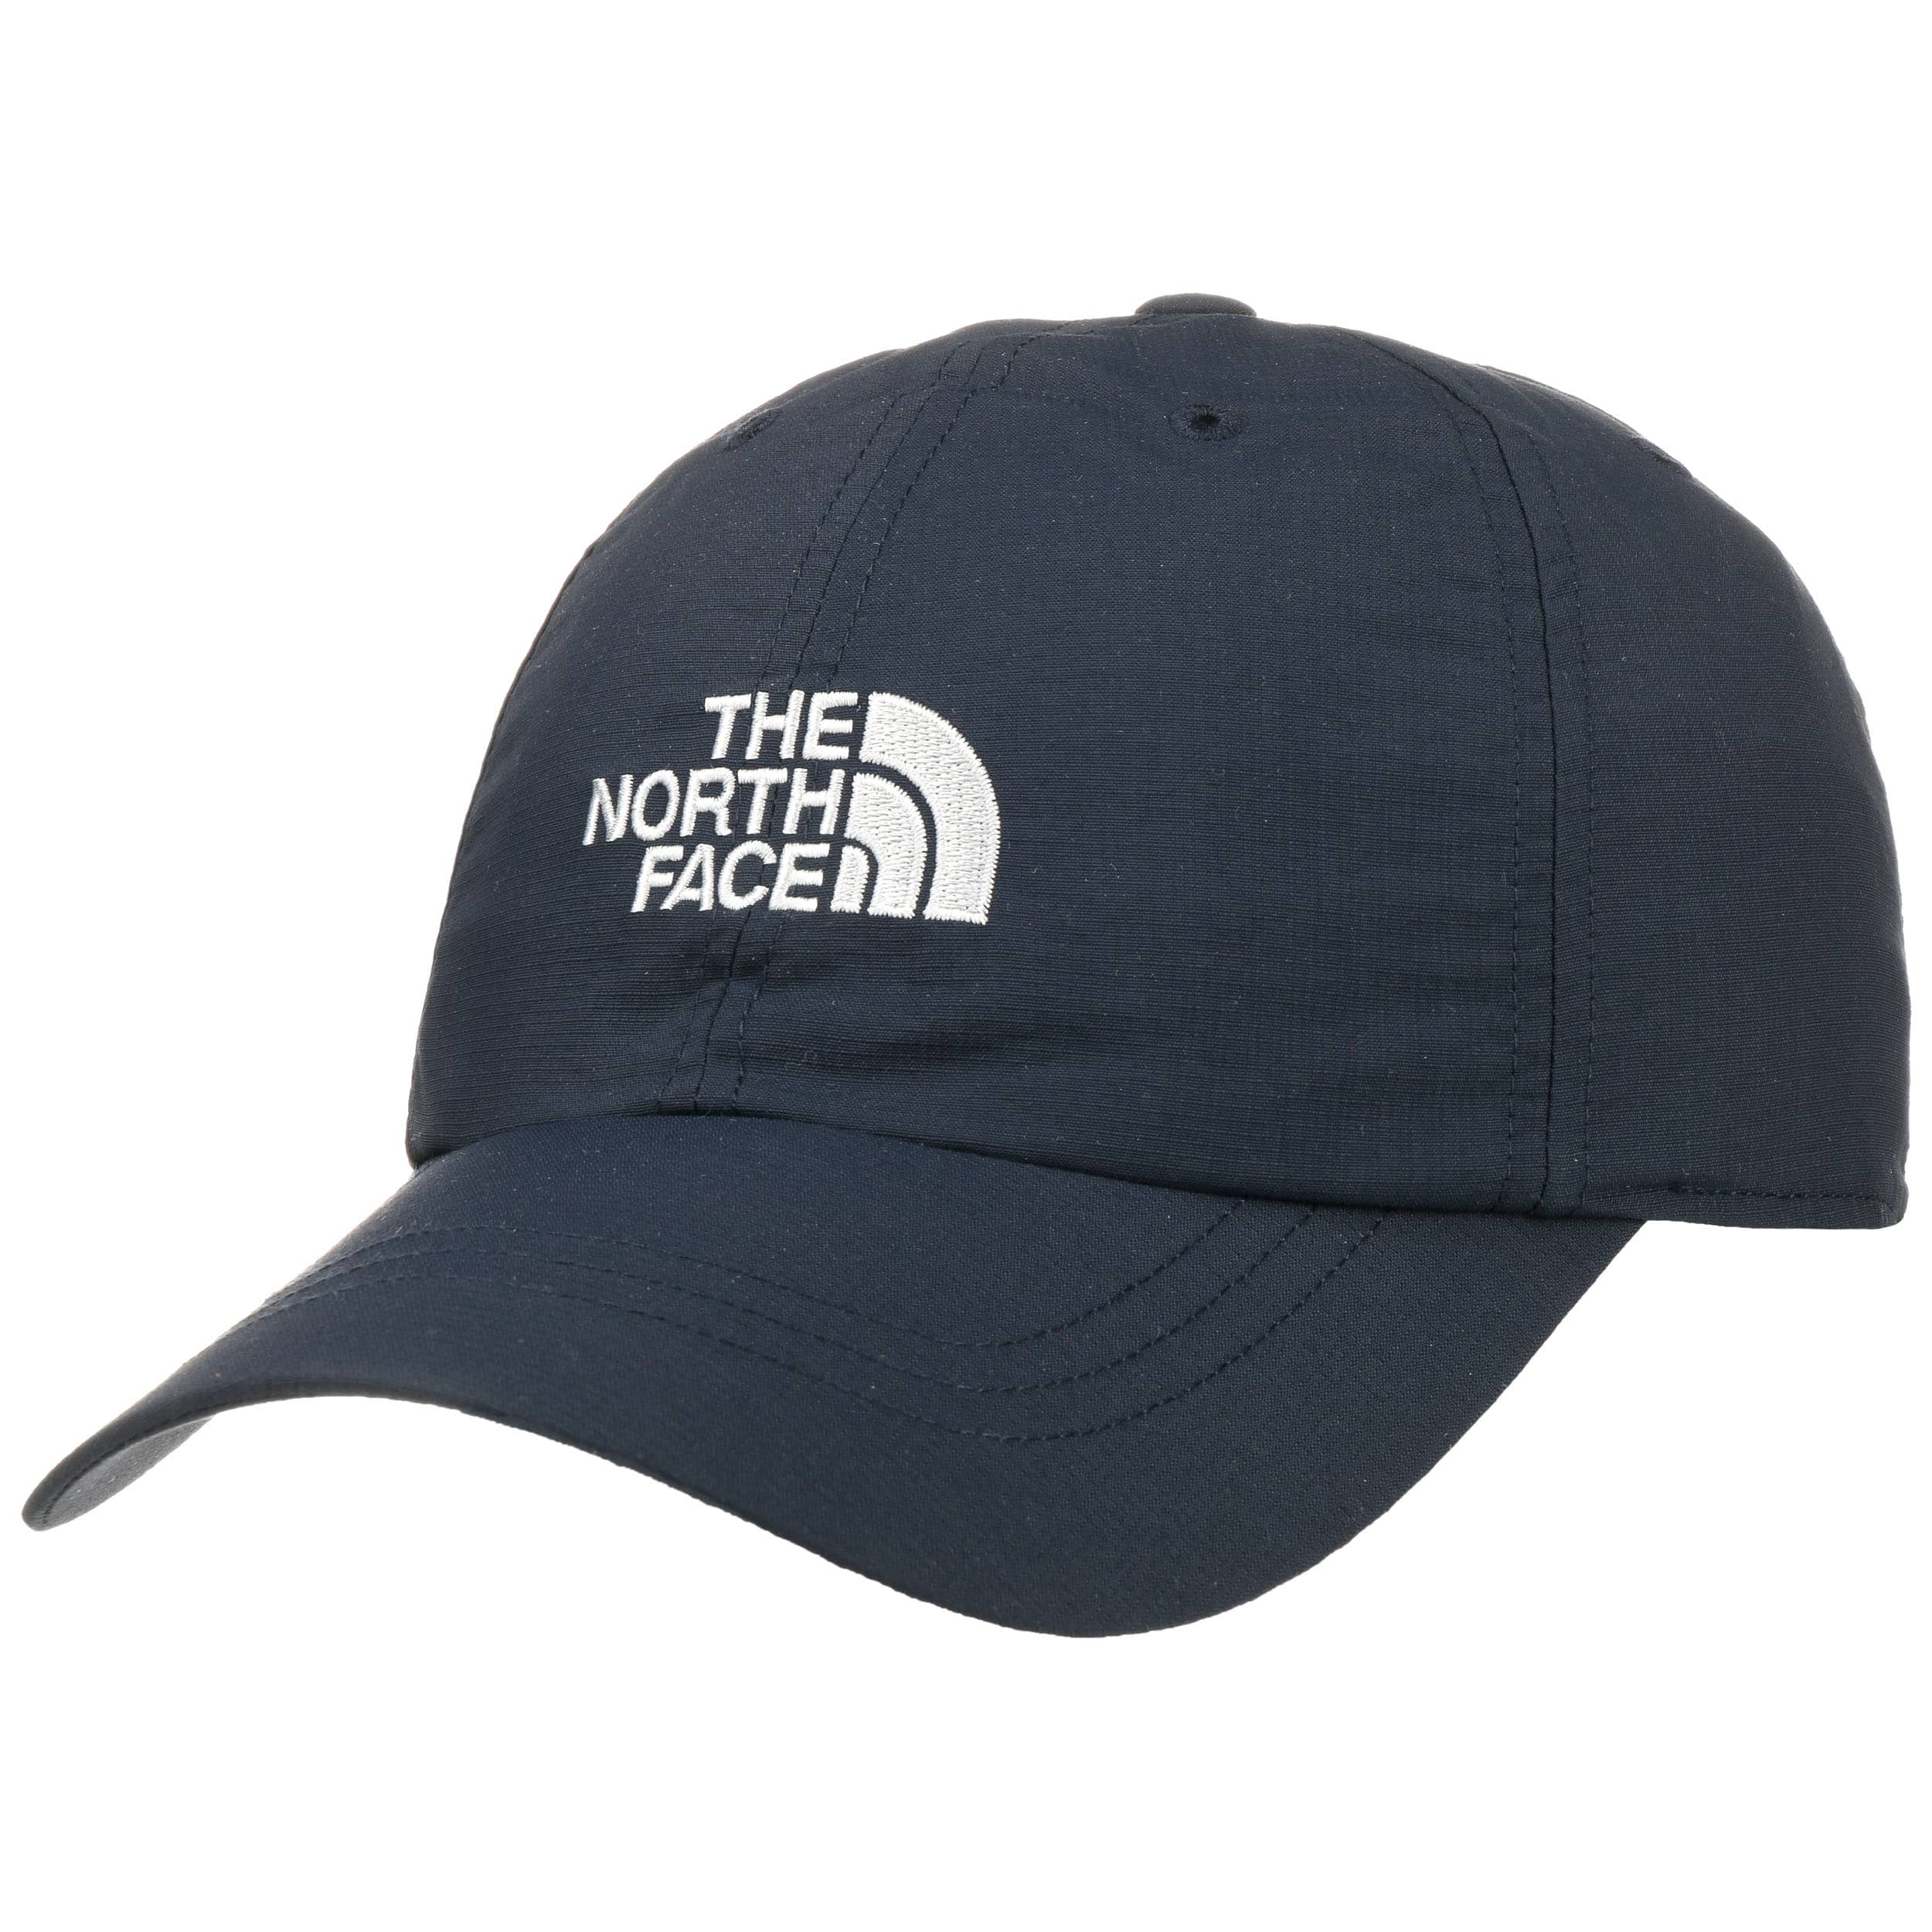 8c6d82a83bb8c ... Horizon Cap by The North Face - navy 2 ...